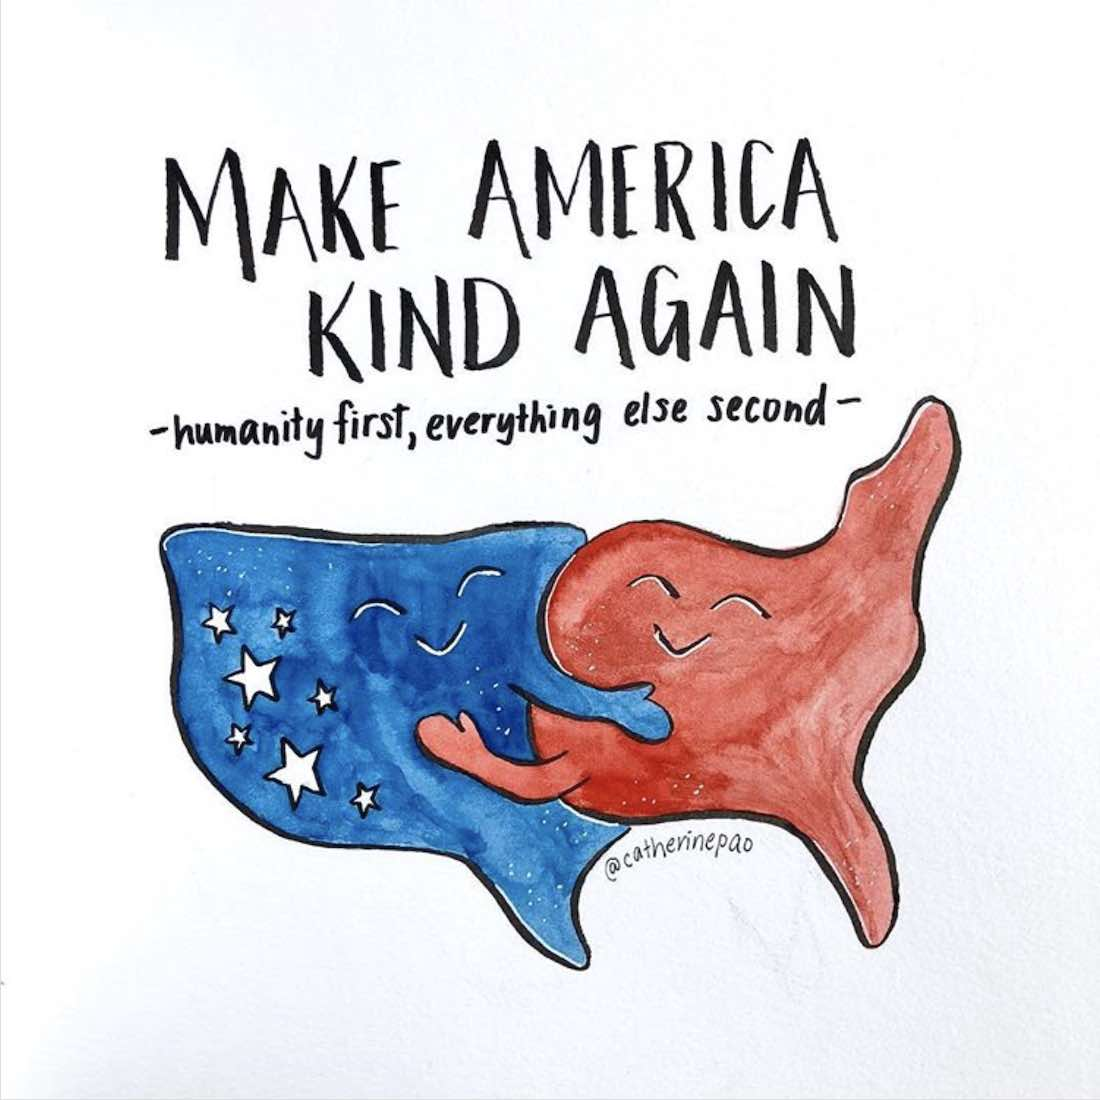 MAKE AMERICA KIND AGAIN by Catherine Pao